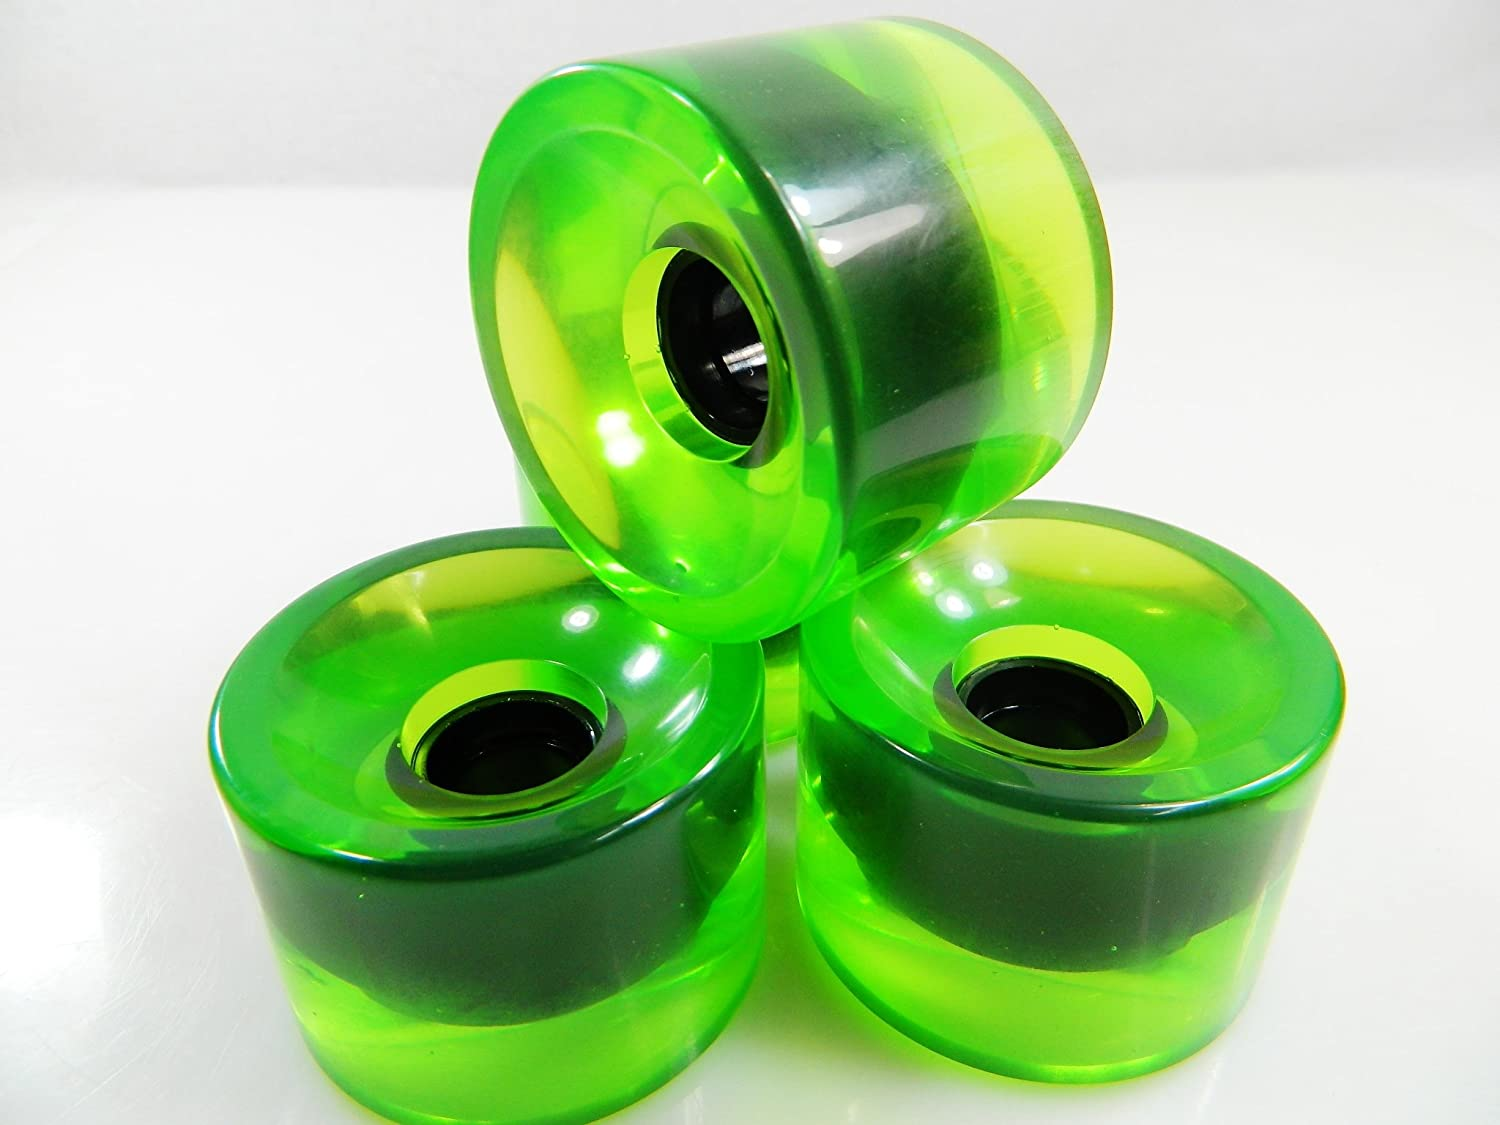 70mm Pro Longboard Skateboard Max 50% OFF Wheels Gel Colors Solid All items free shipping